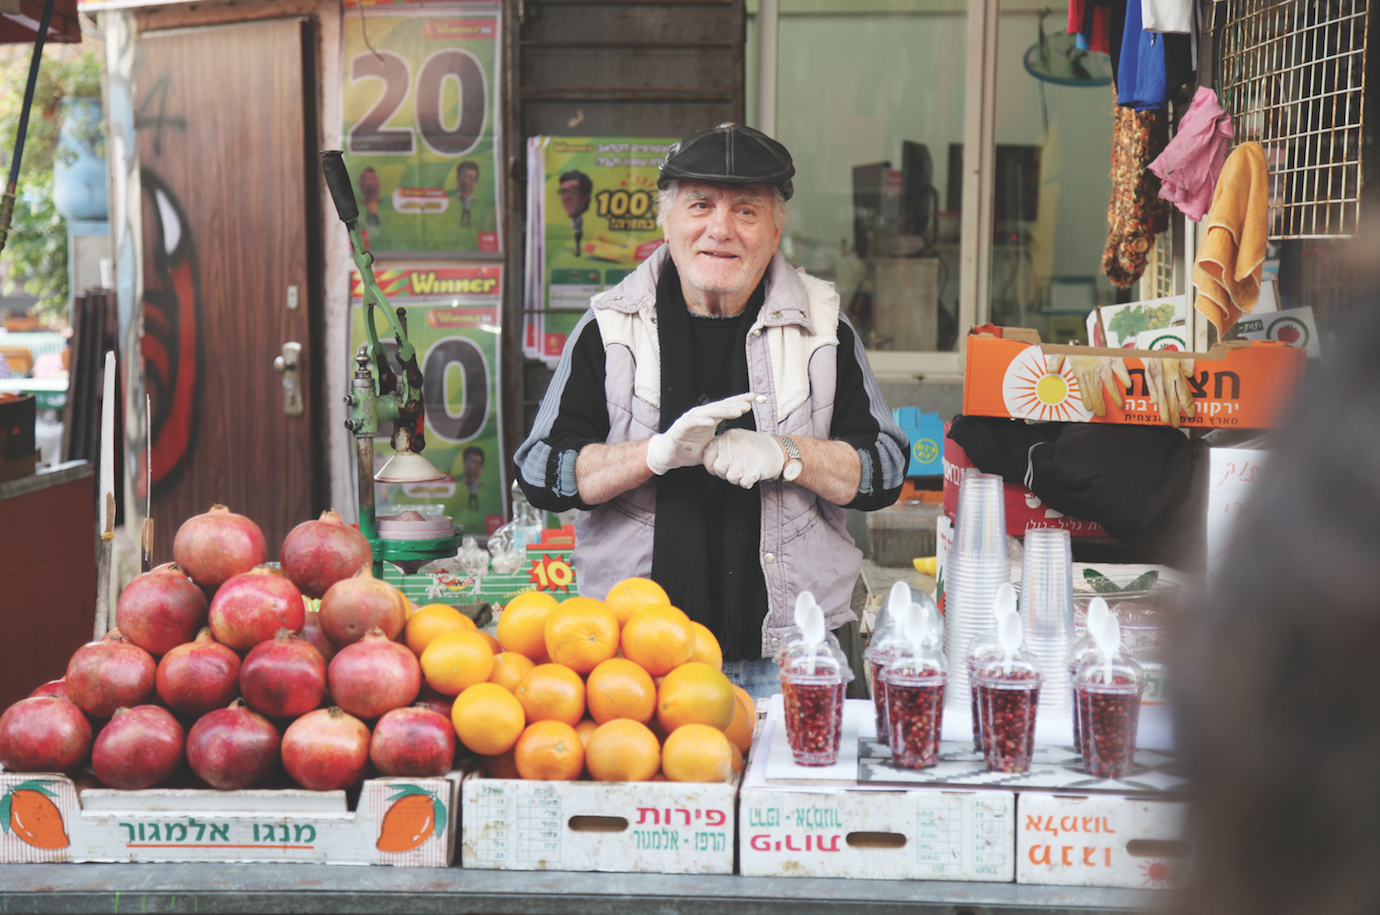 A vendor at Shuk Hacarmel in Tel Aviv smiles for the camera of one of the participants on the celebrity chef trip to Israel. Courtesy of Herb Karlitz